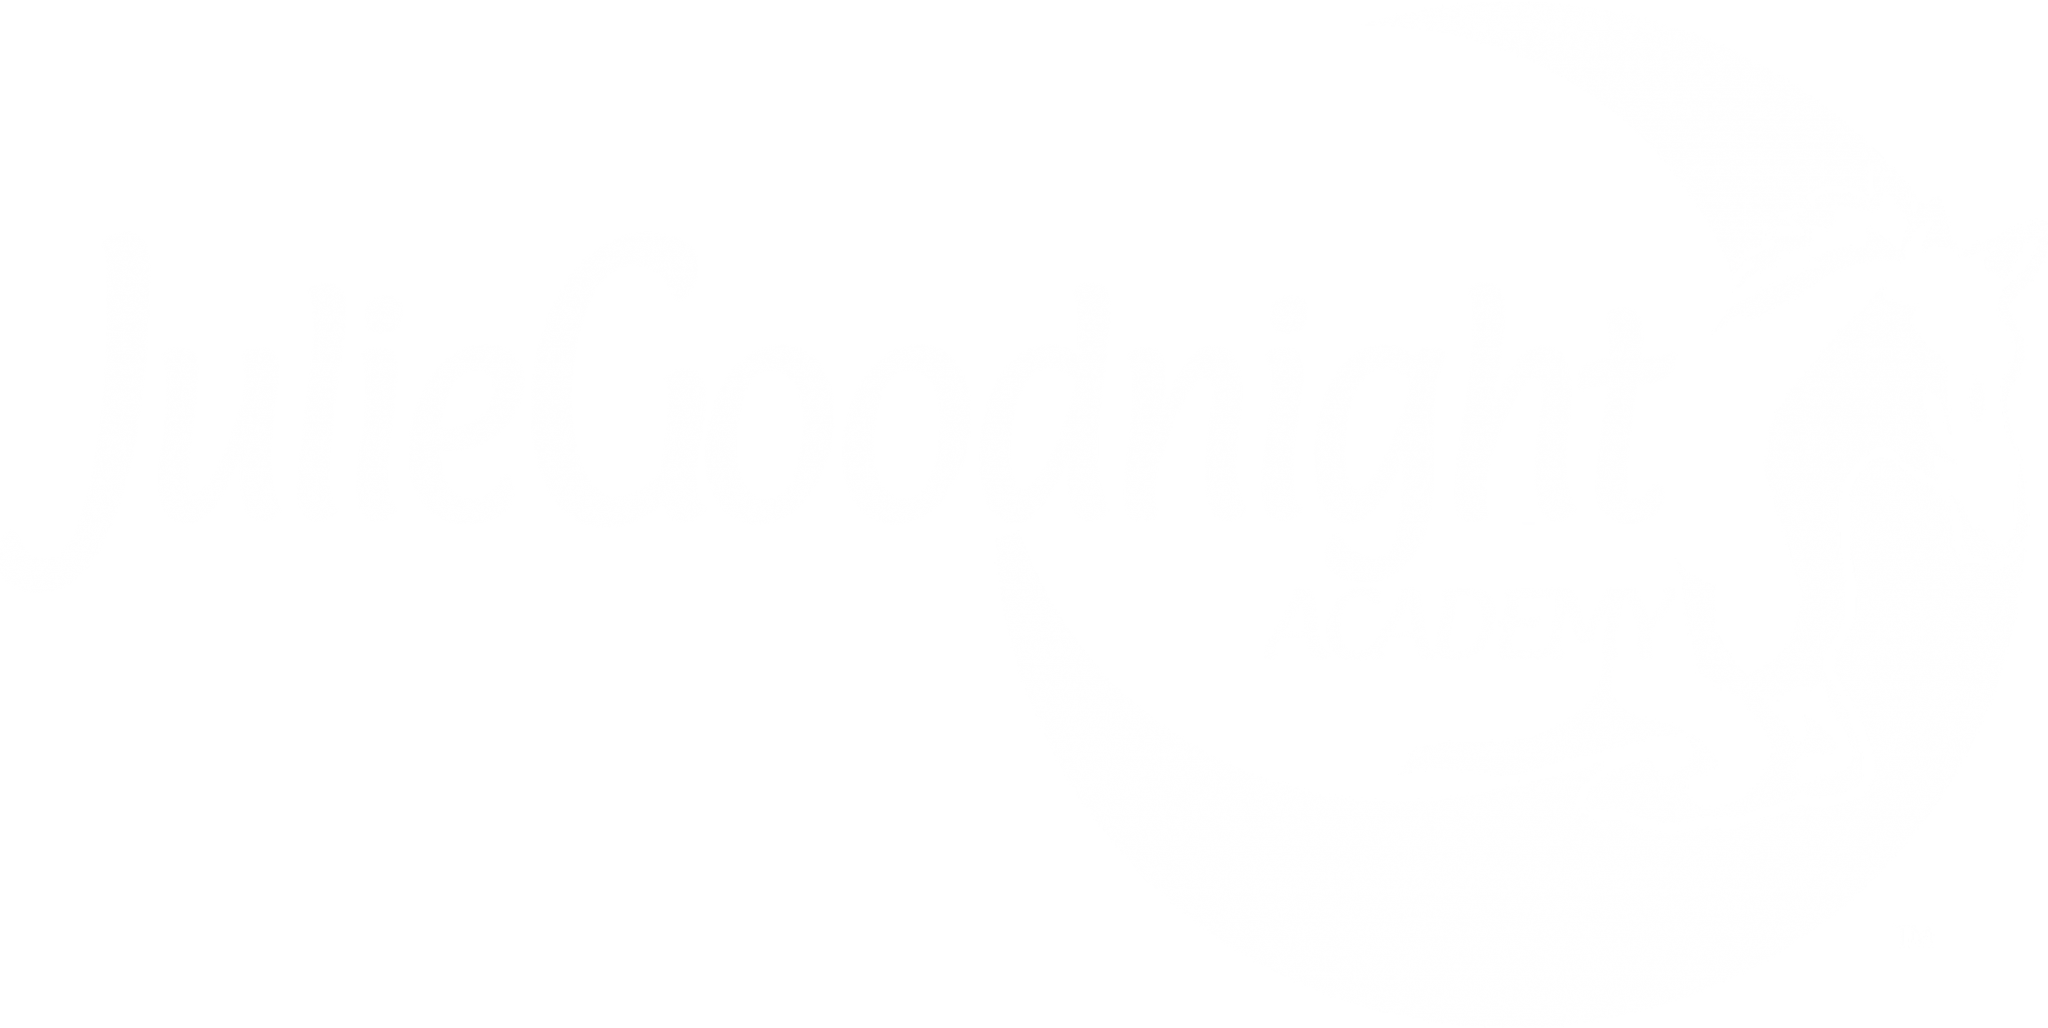 Julie Goodnight Academy